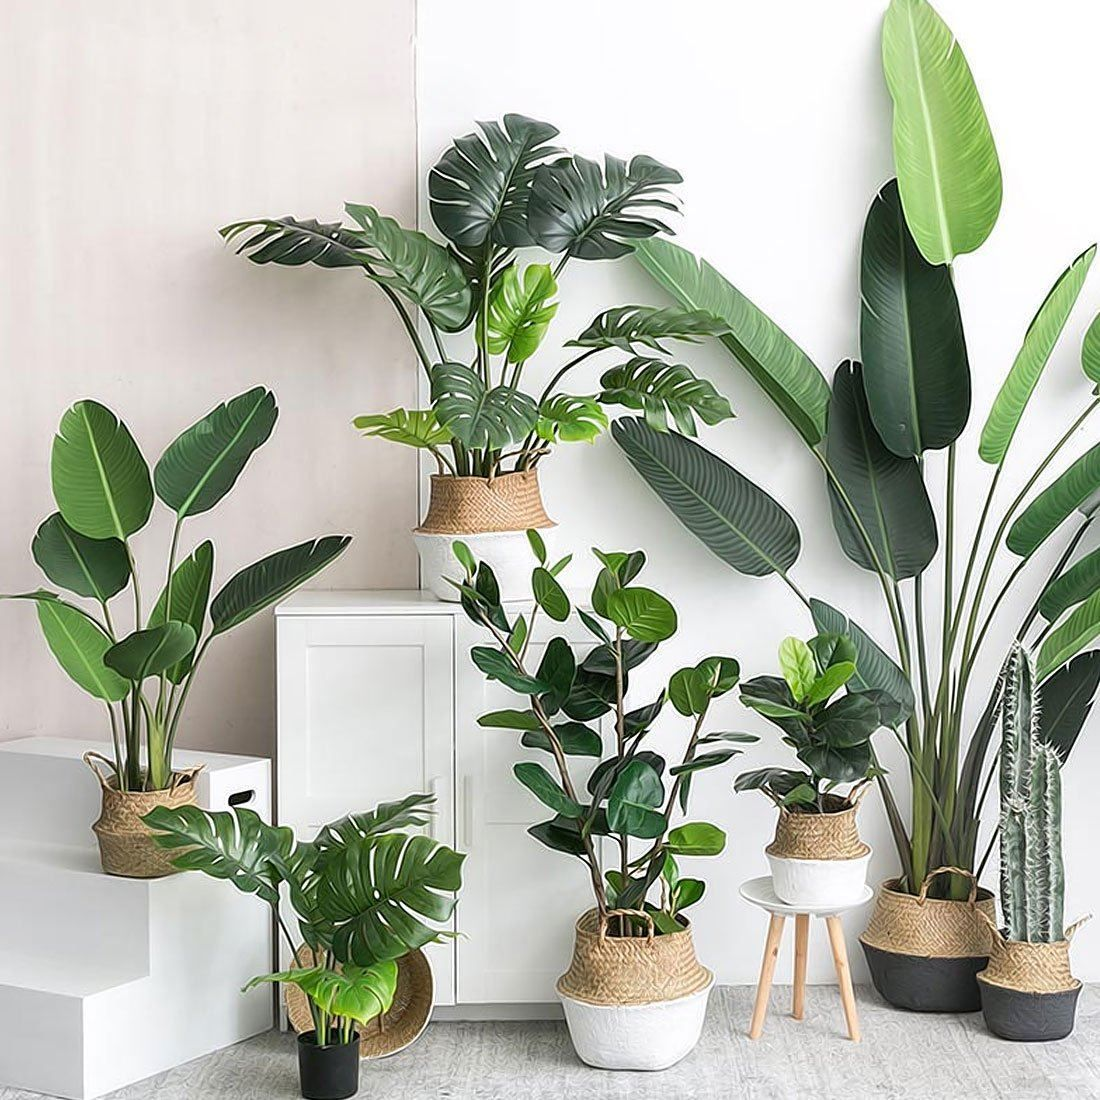 Artificial Plants & Leaves for Home & Garden Decor